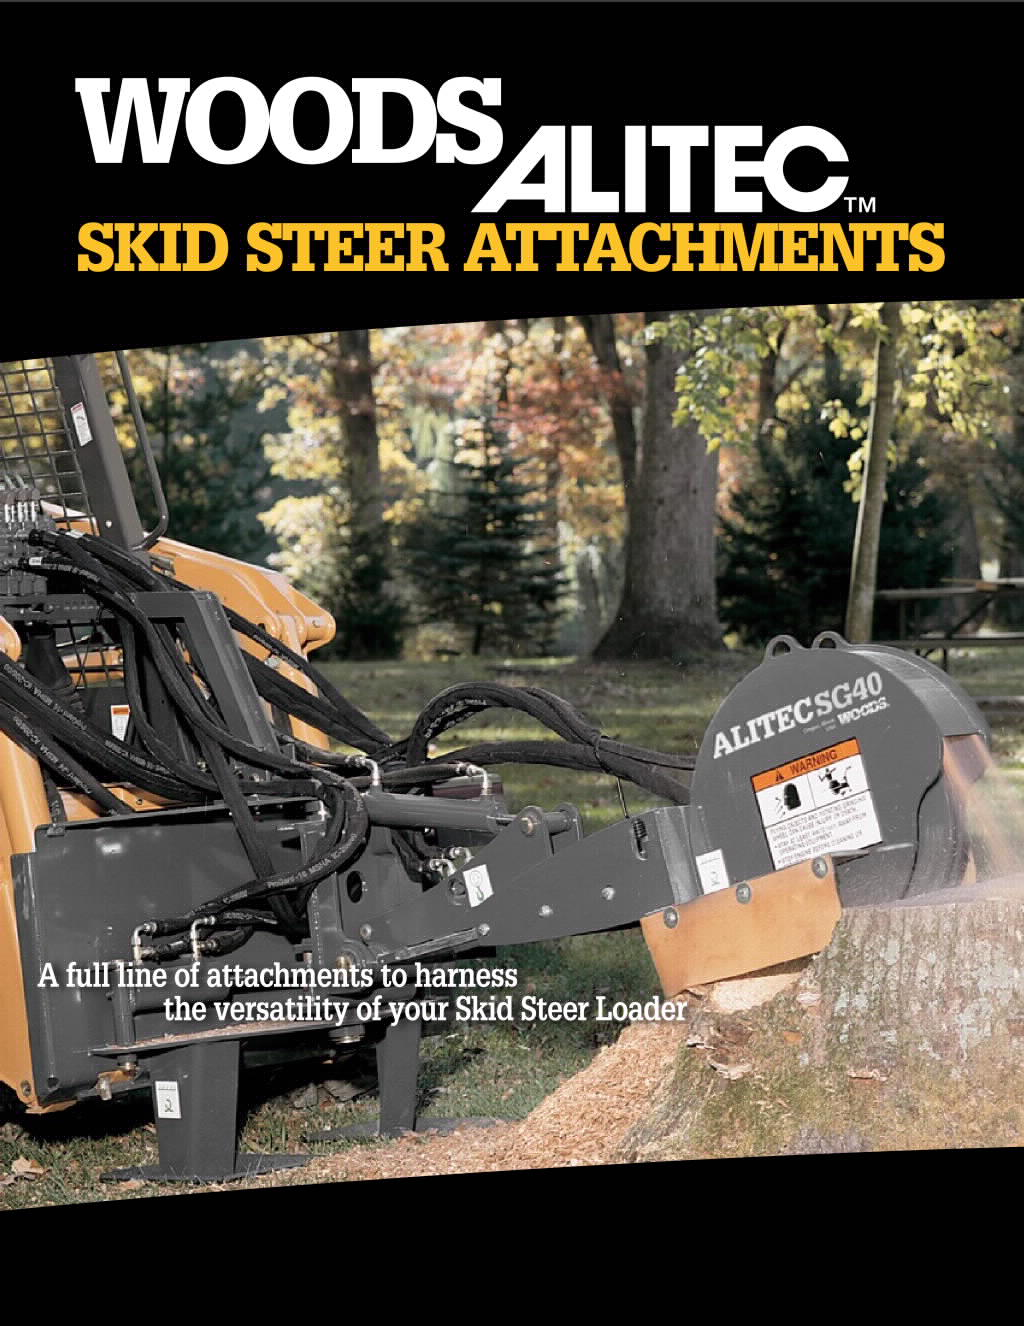 Skid Steer Attachments Brochure